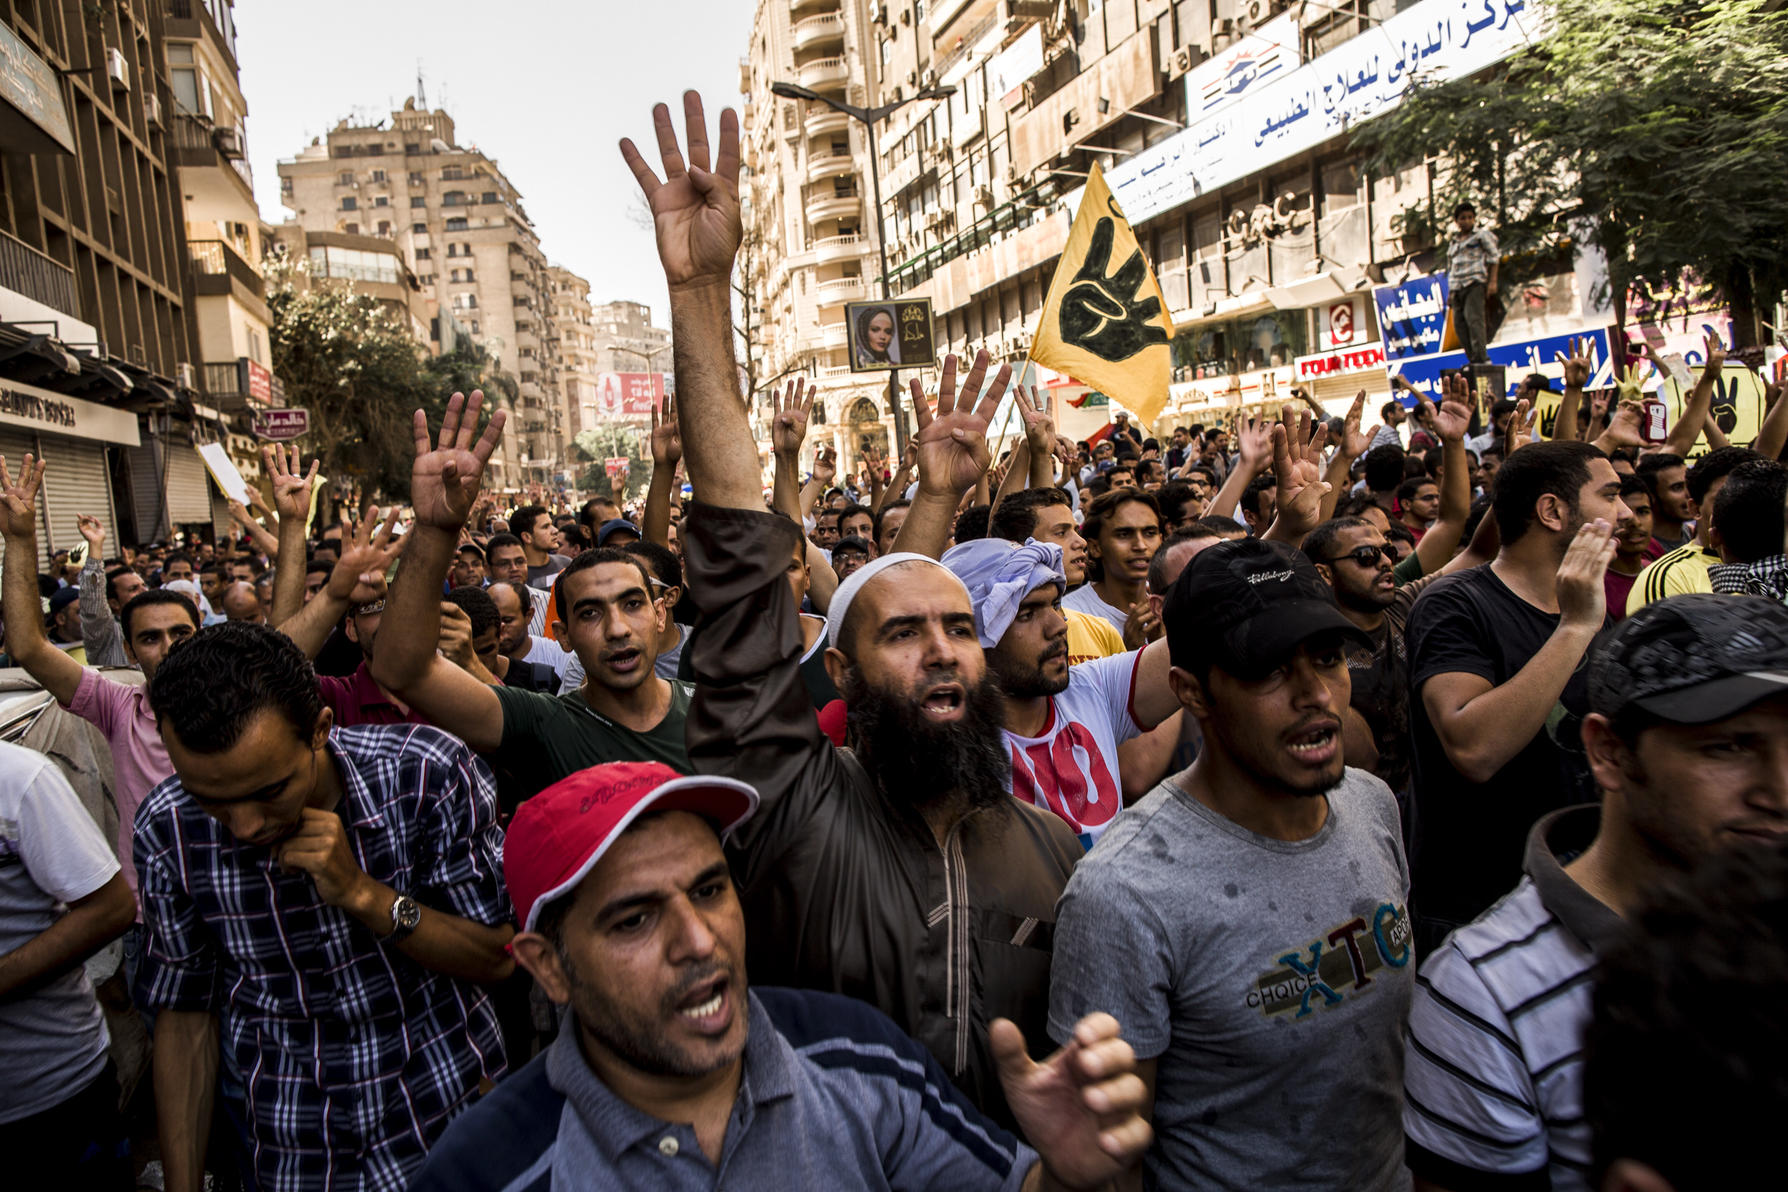 Demonstrators during a protest against the military-backed government in Cairo